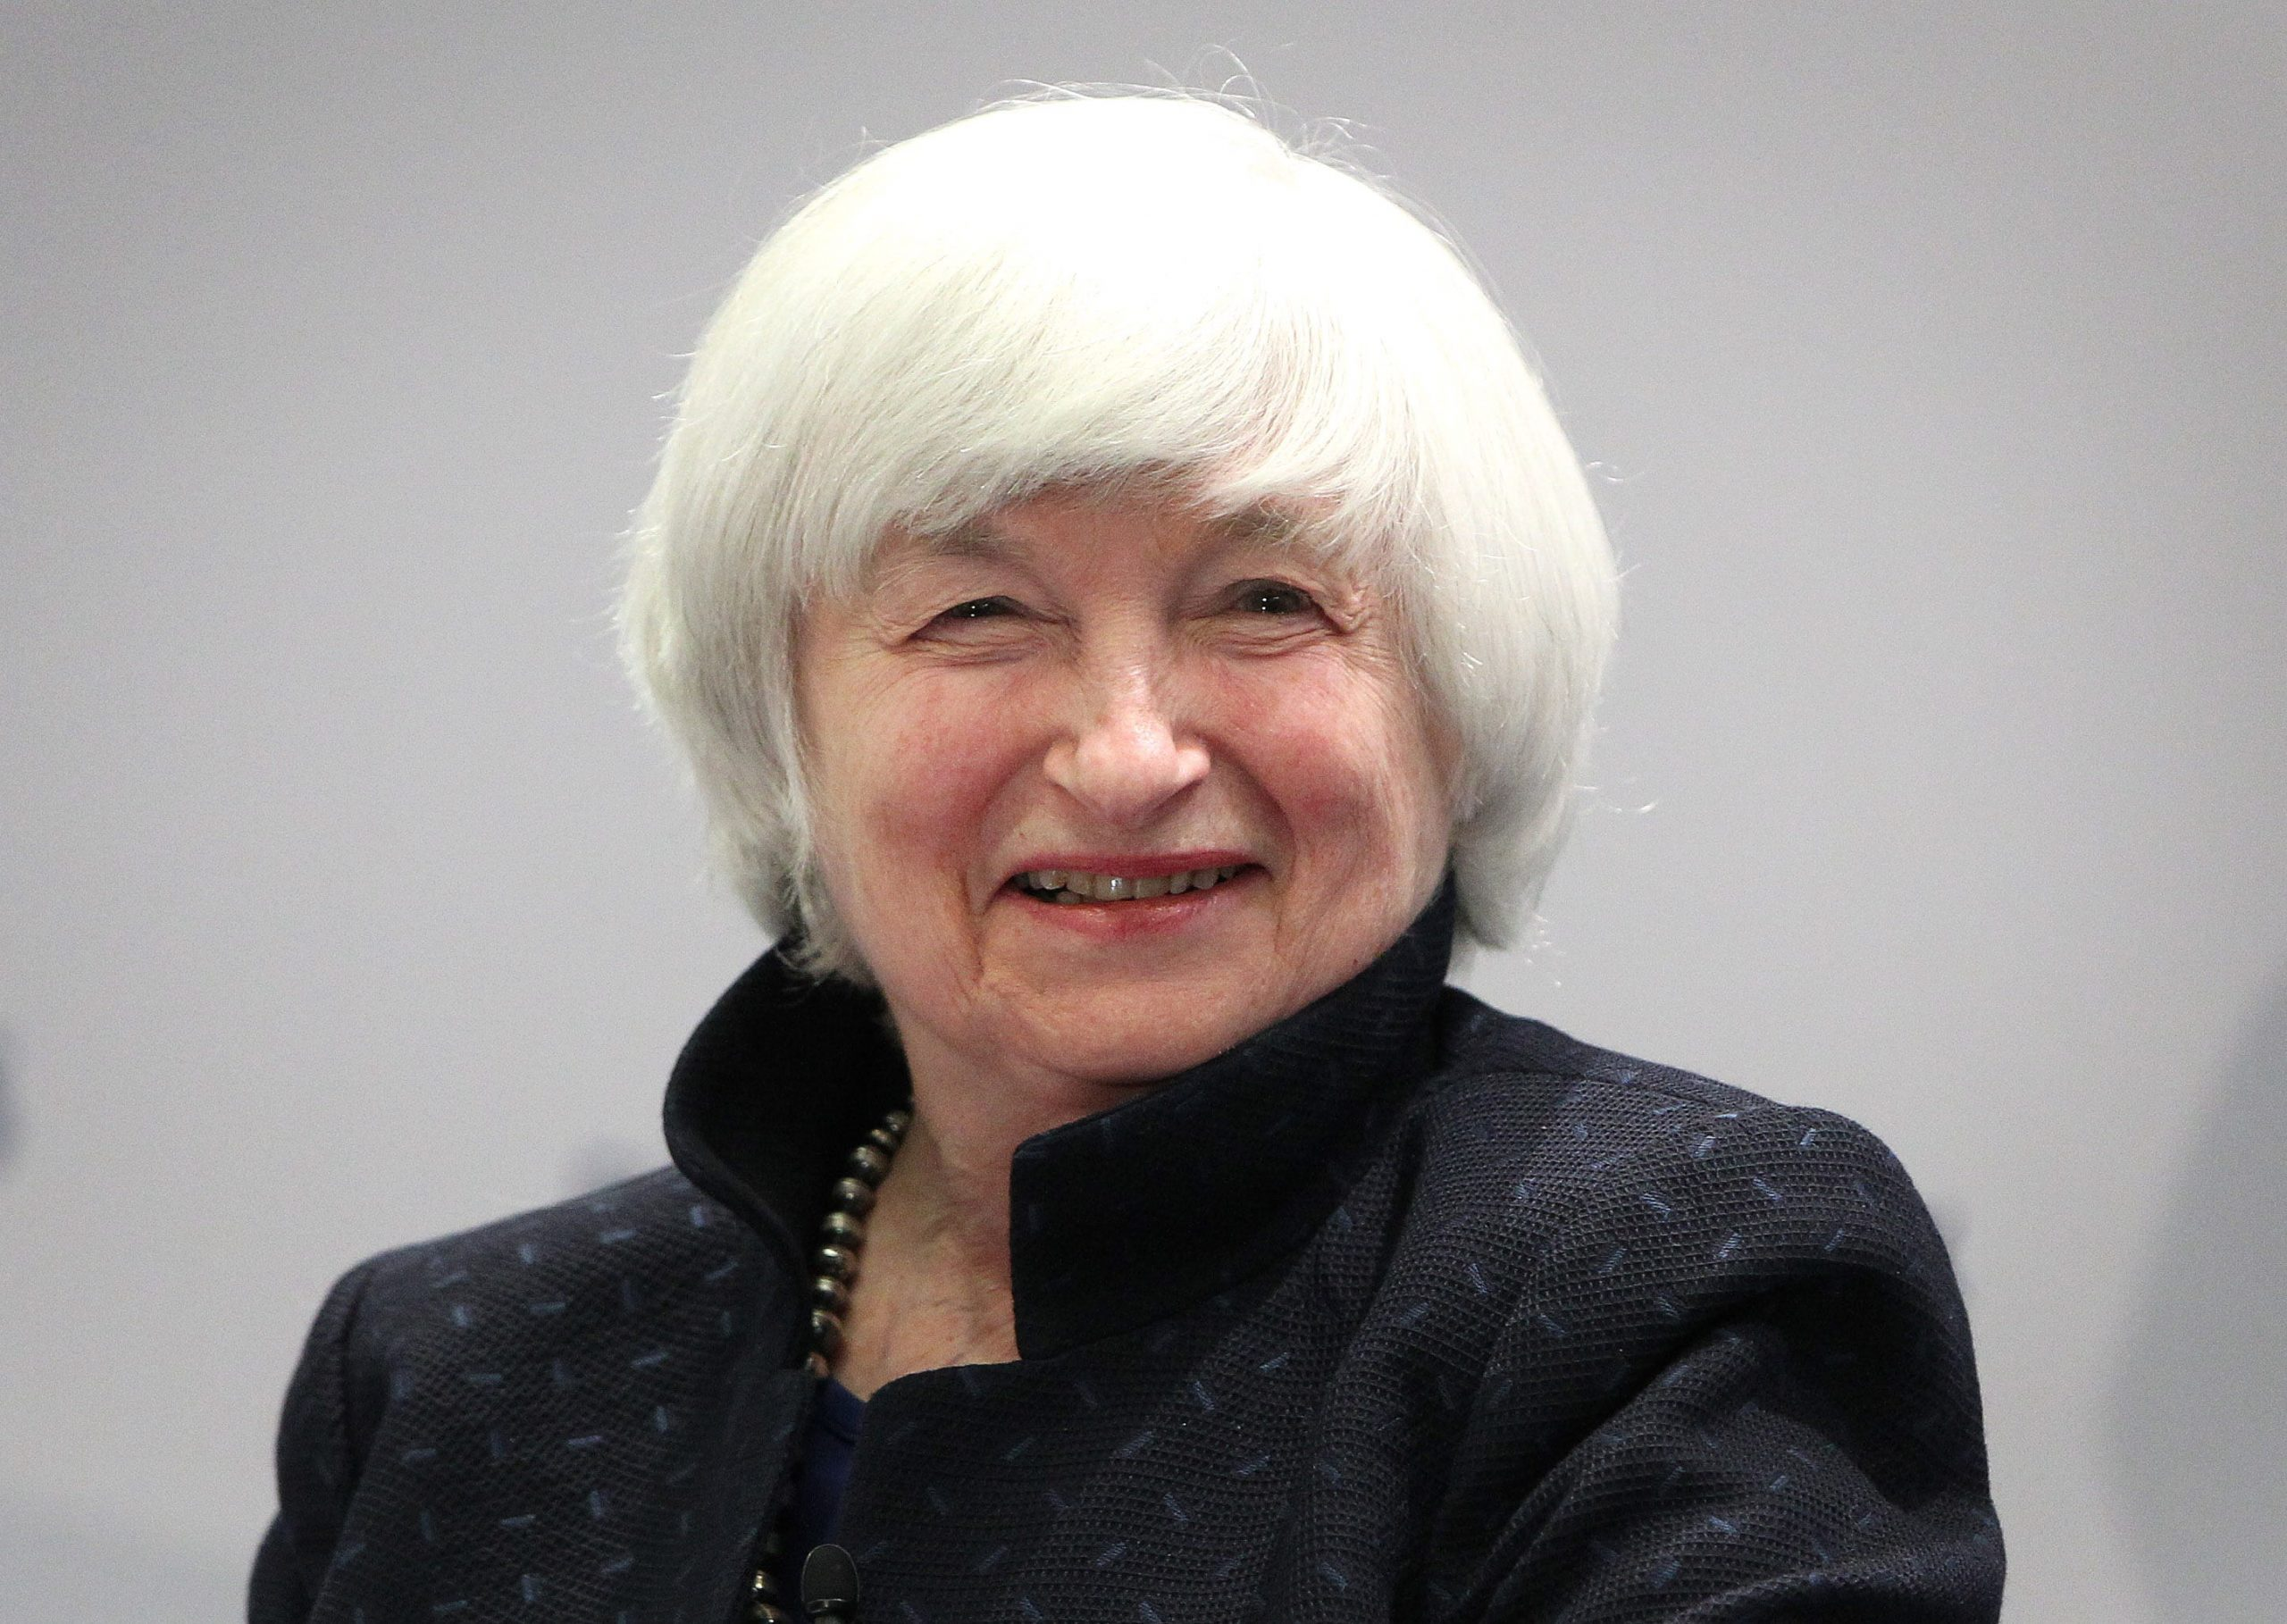 Janet Yellen, poised to become the first female Treasury chief, may be a calming influence in a divided Washington